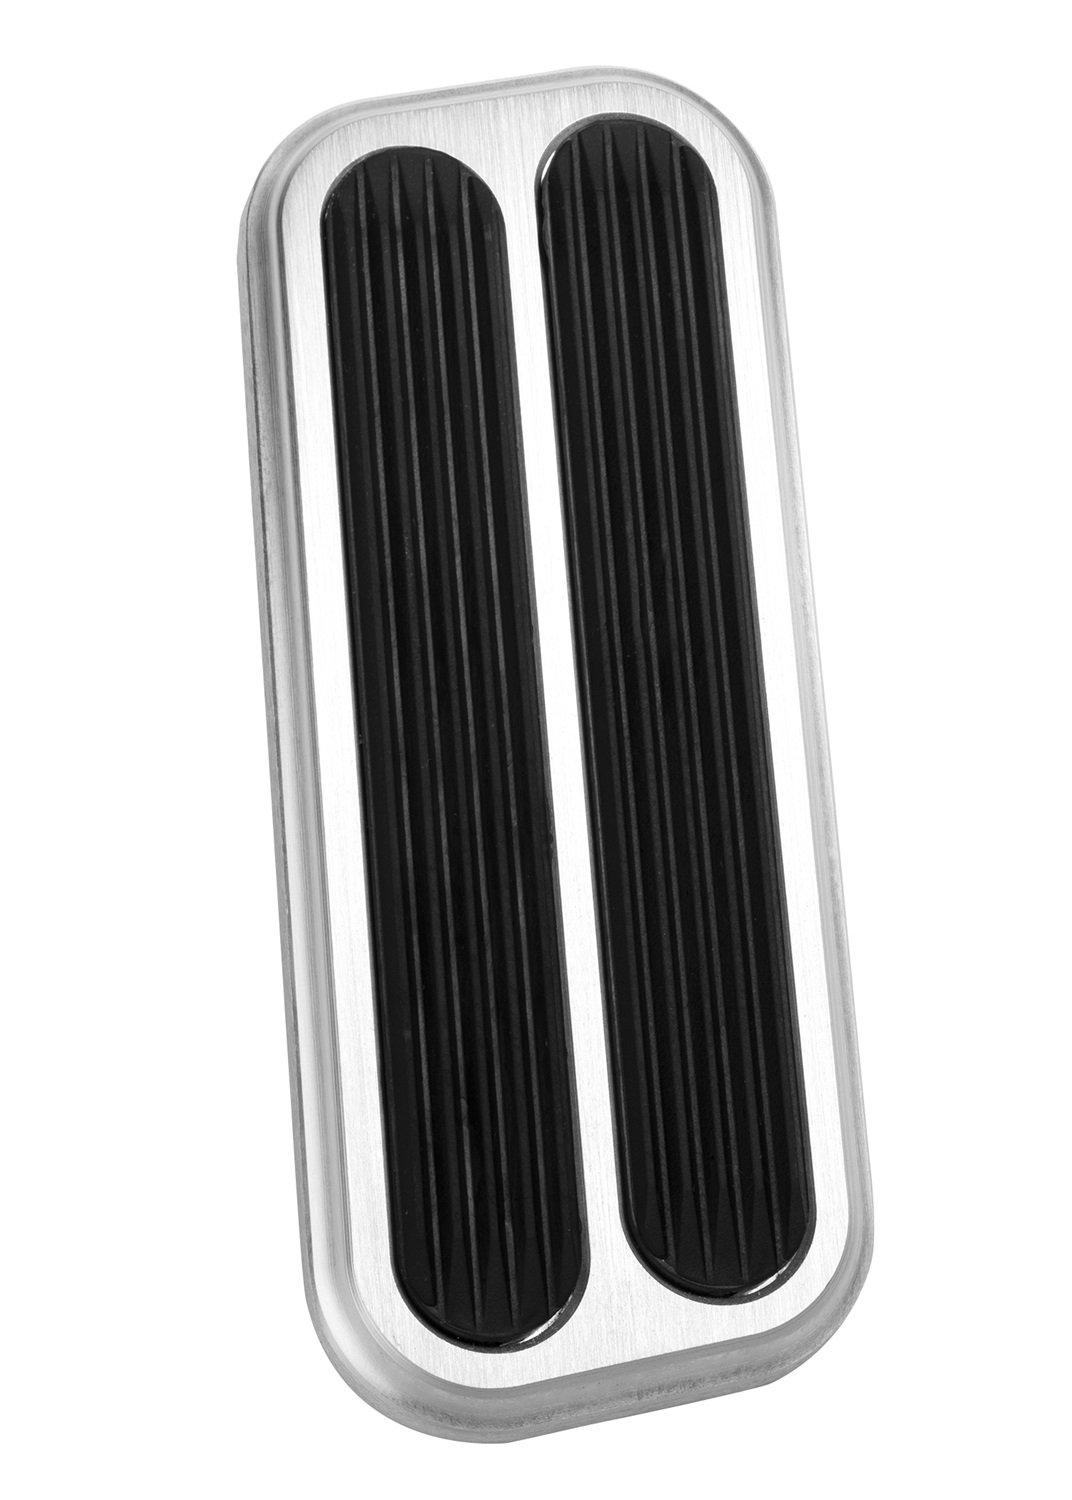 Lokar BAG-6182 Bronco Throttle Pedal Pad (Curved) by Lokar